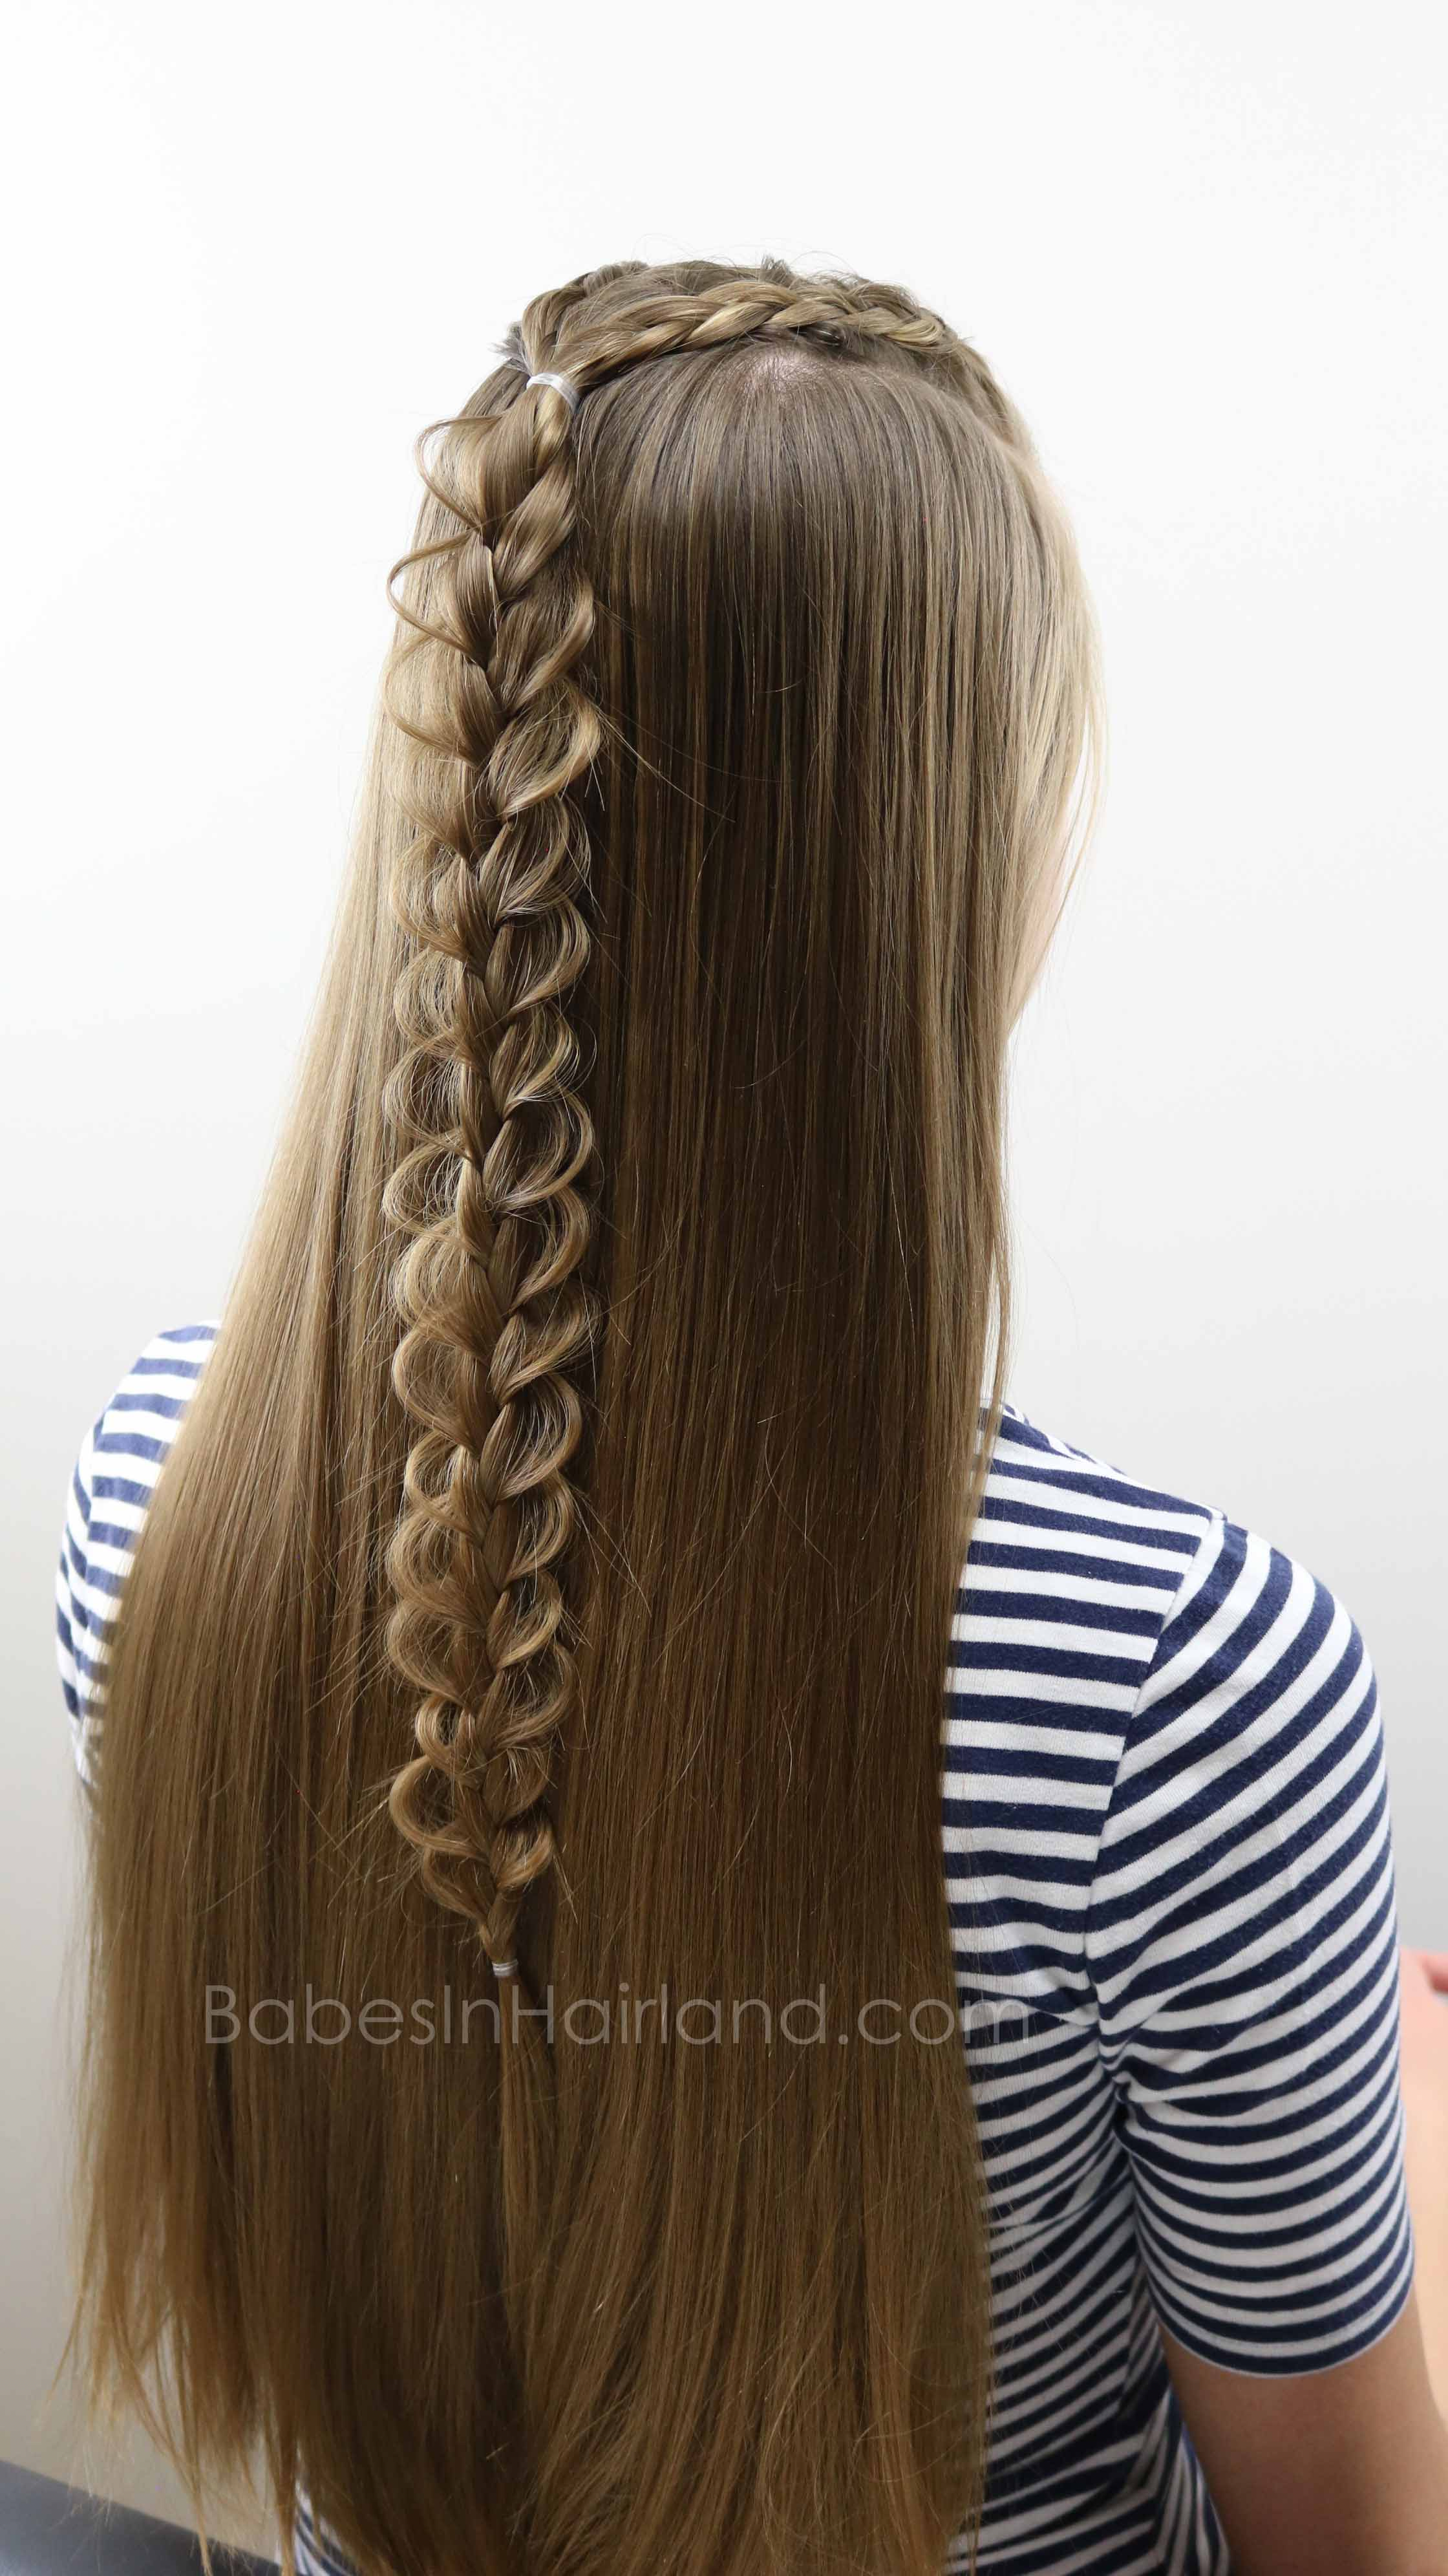 2 Dutch Braids 5 Different Hairstyles | BabesInHairland.com